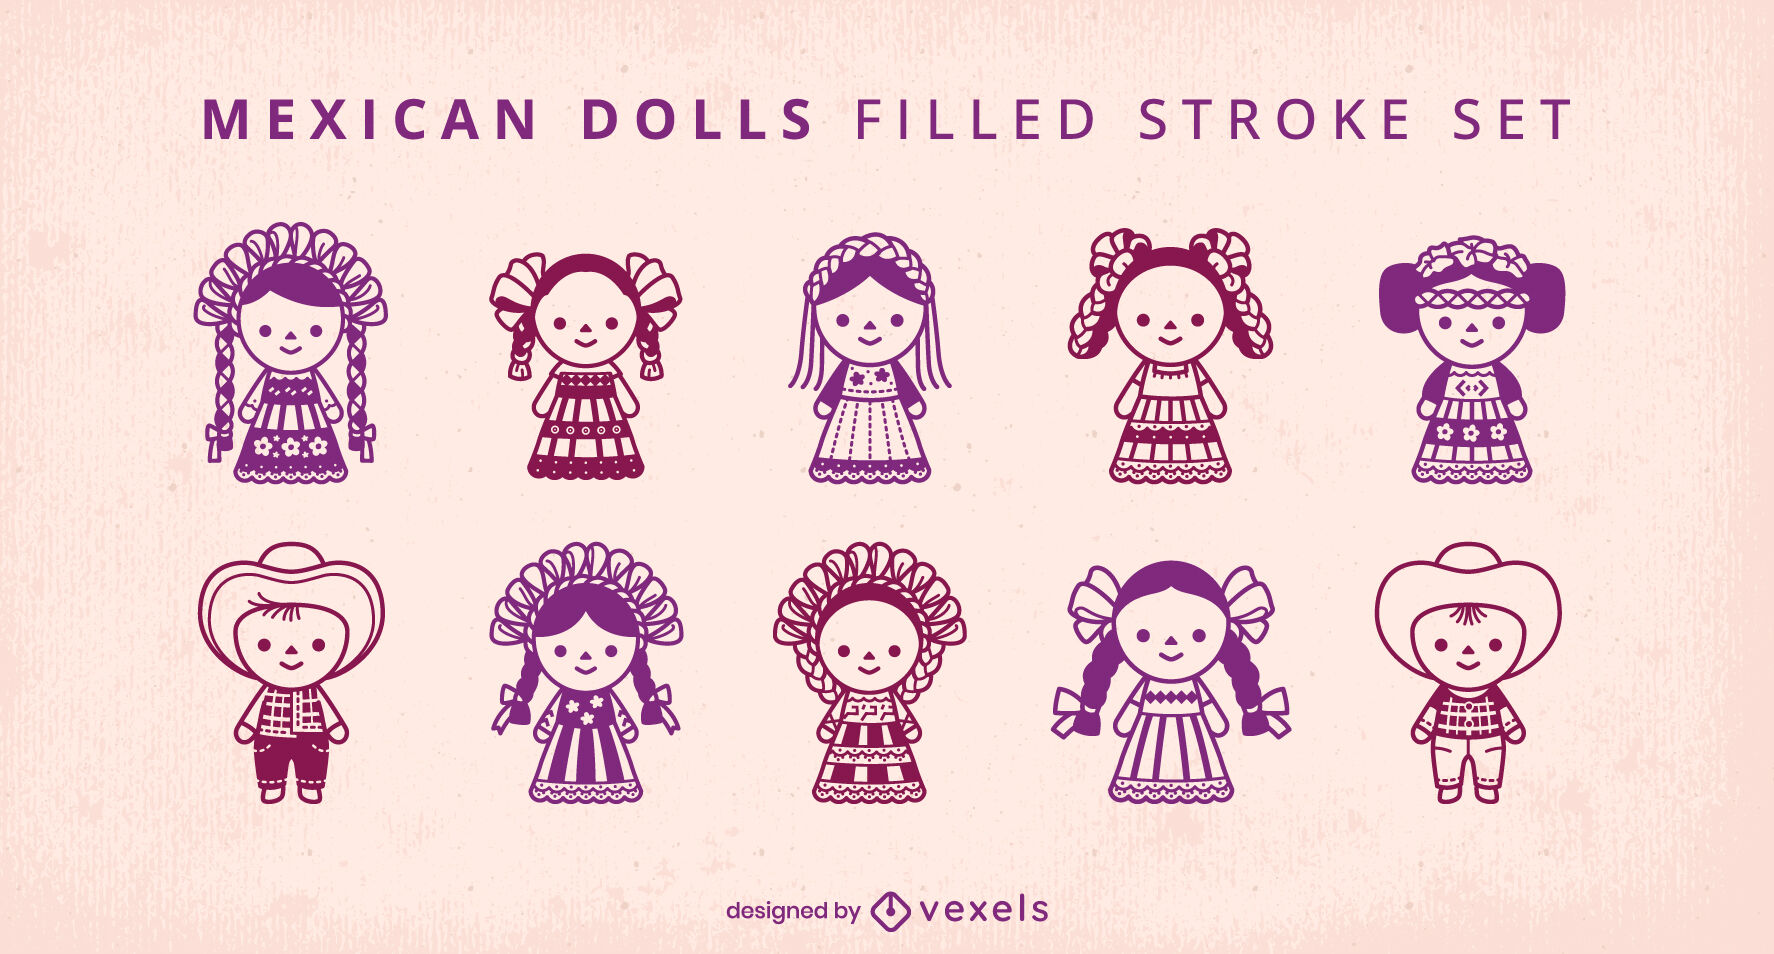 Cute traditional mexican people dolls set